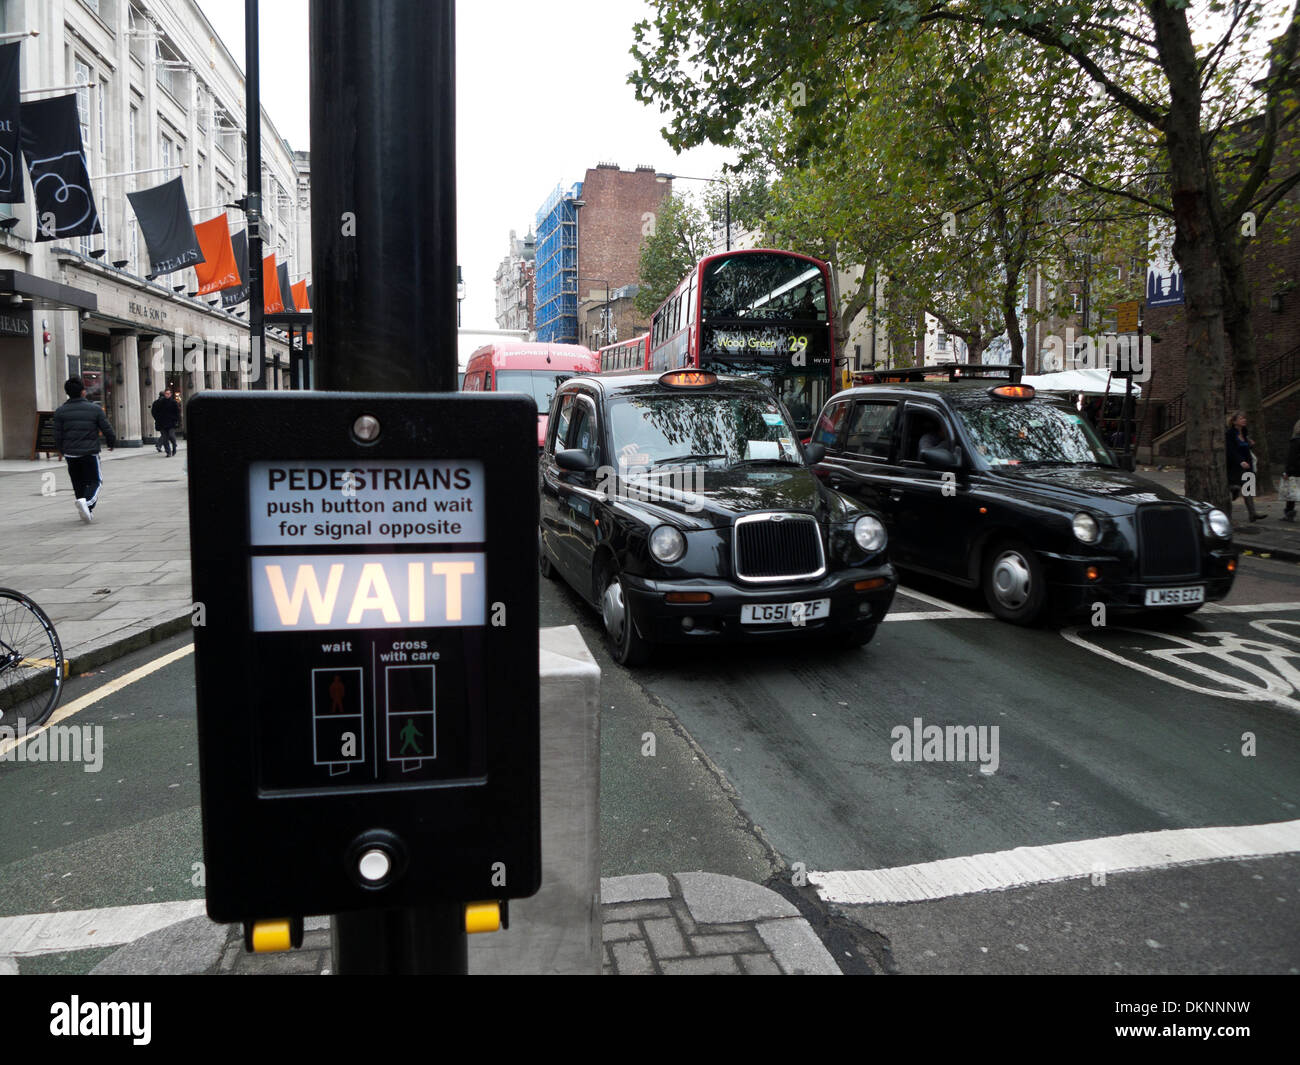 WAIT traffic light sign at pedestrian crossing with black taxi cabs waiting in Tottenham Court Rd London UK KATHY DEWITT - Stock Image